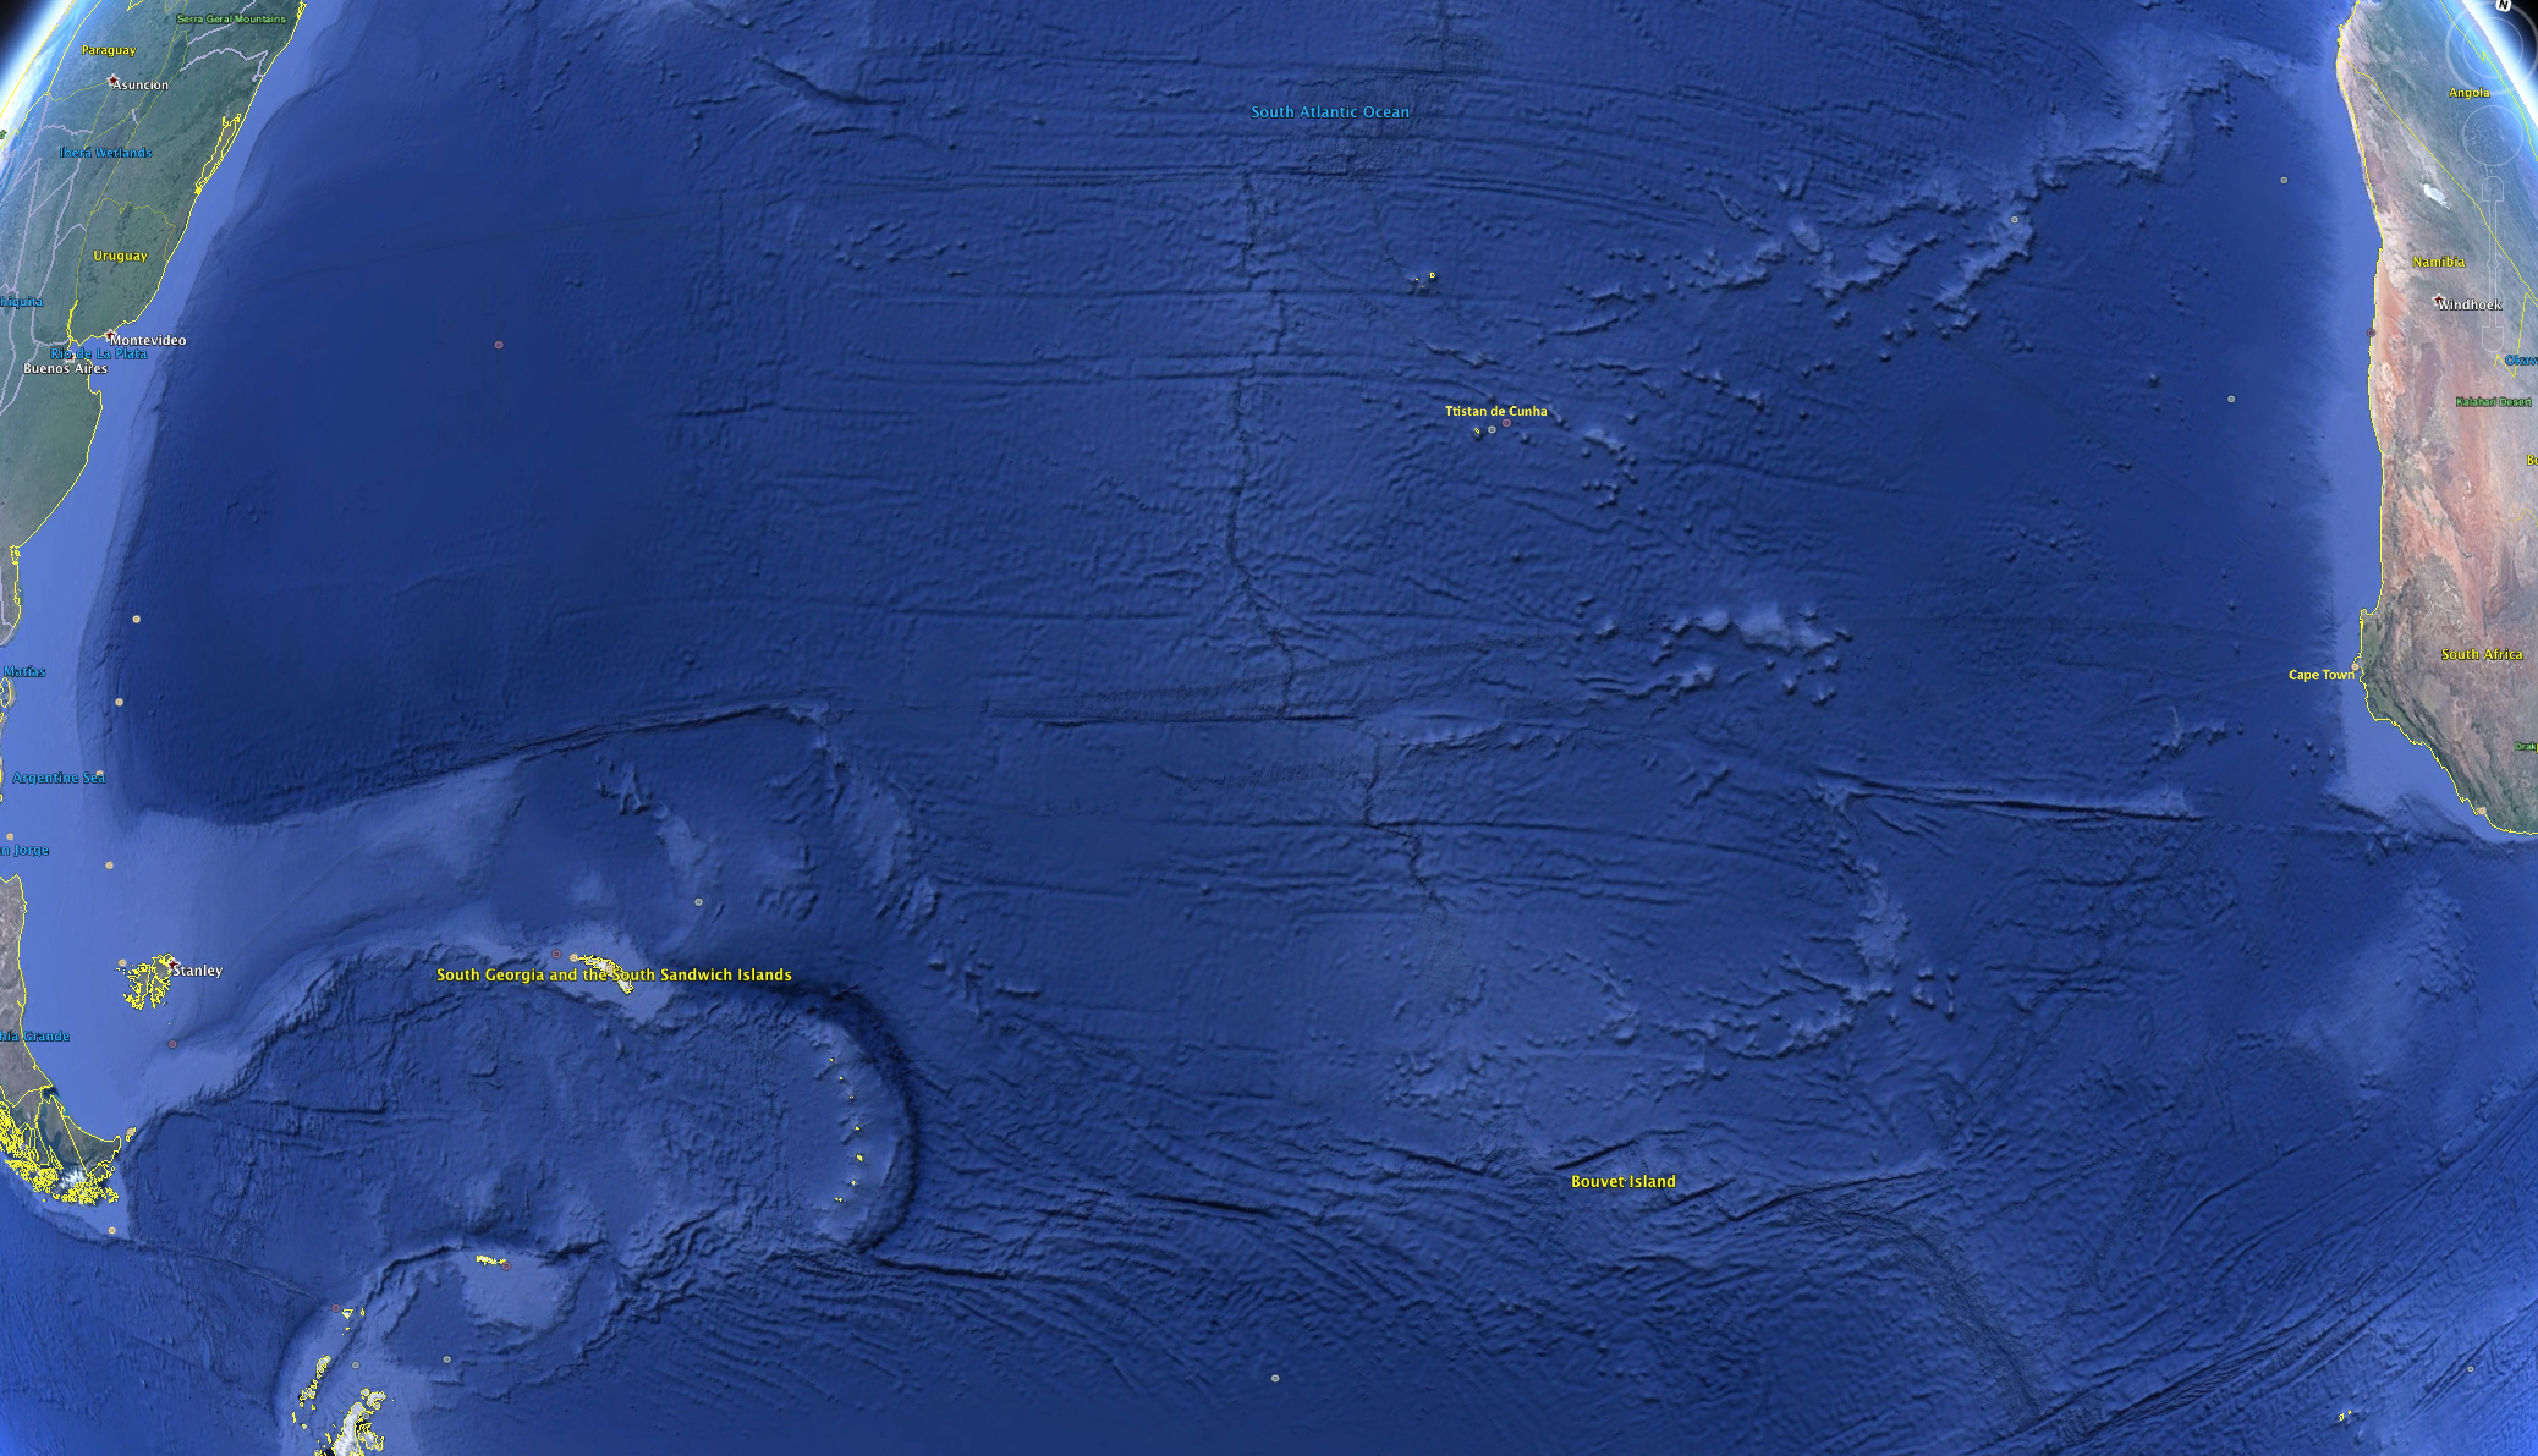 Leaving land: the blue of the South Atlantic